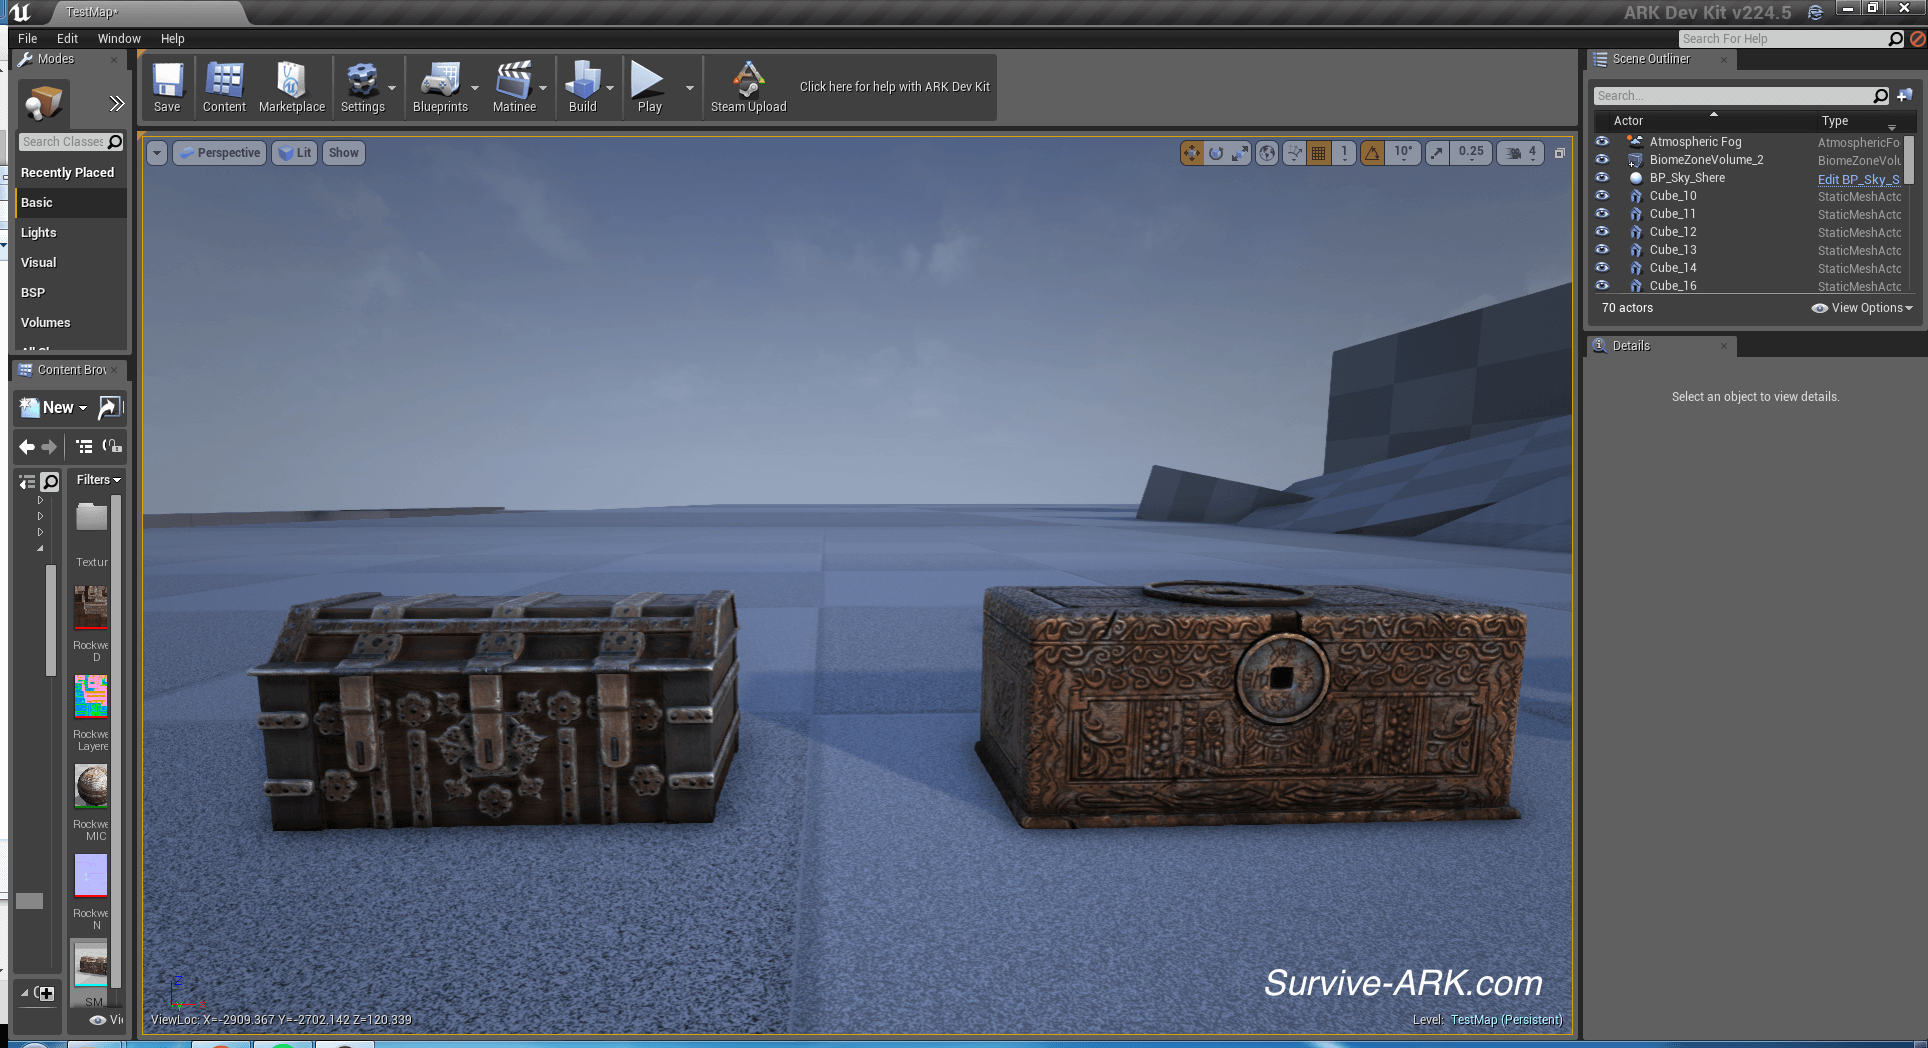 Devkit Preview: Explorer Chests, colored Beaver and colored